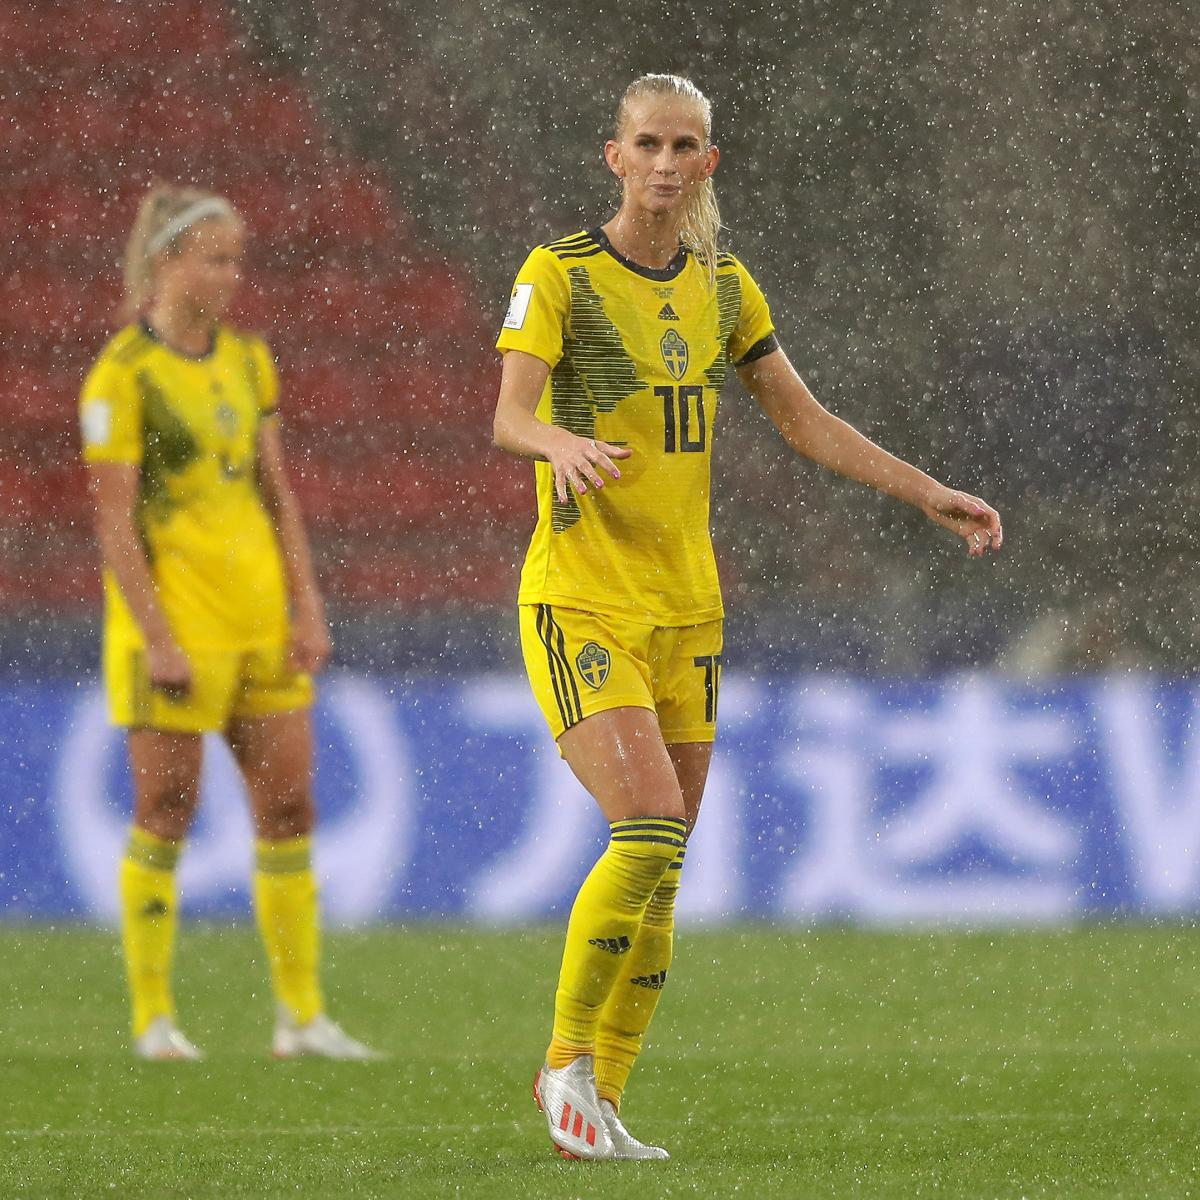 Champions League 2019 Live Stream Odds For Tuesday S: Sweden Vs. Canada: Odds, Live Stream, TV Info For Women's